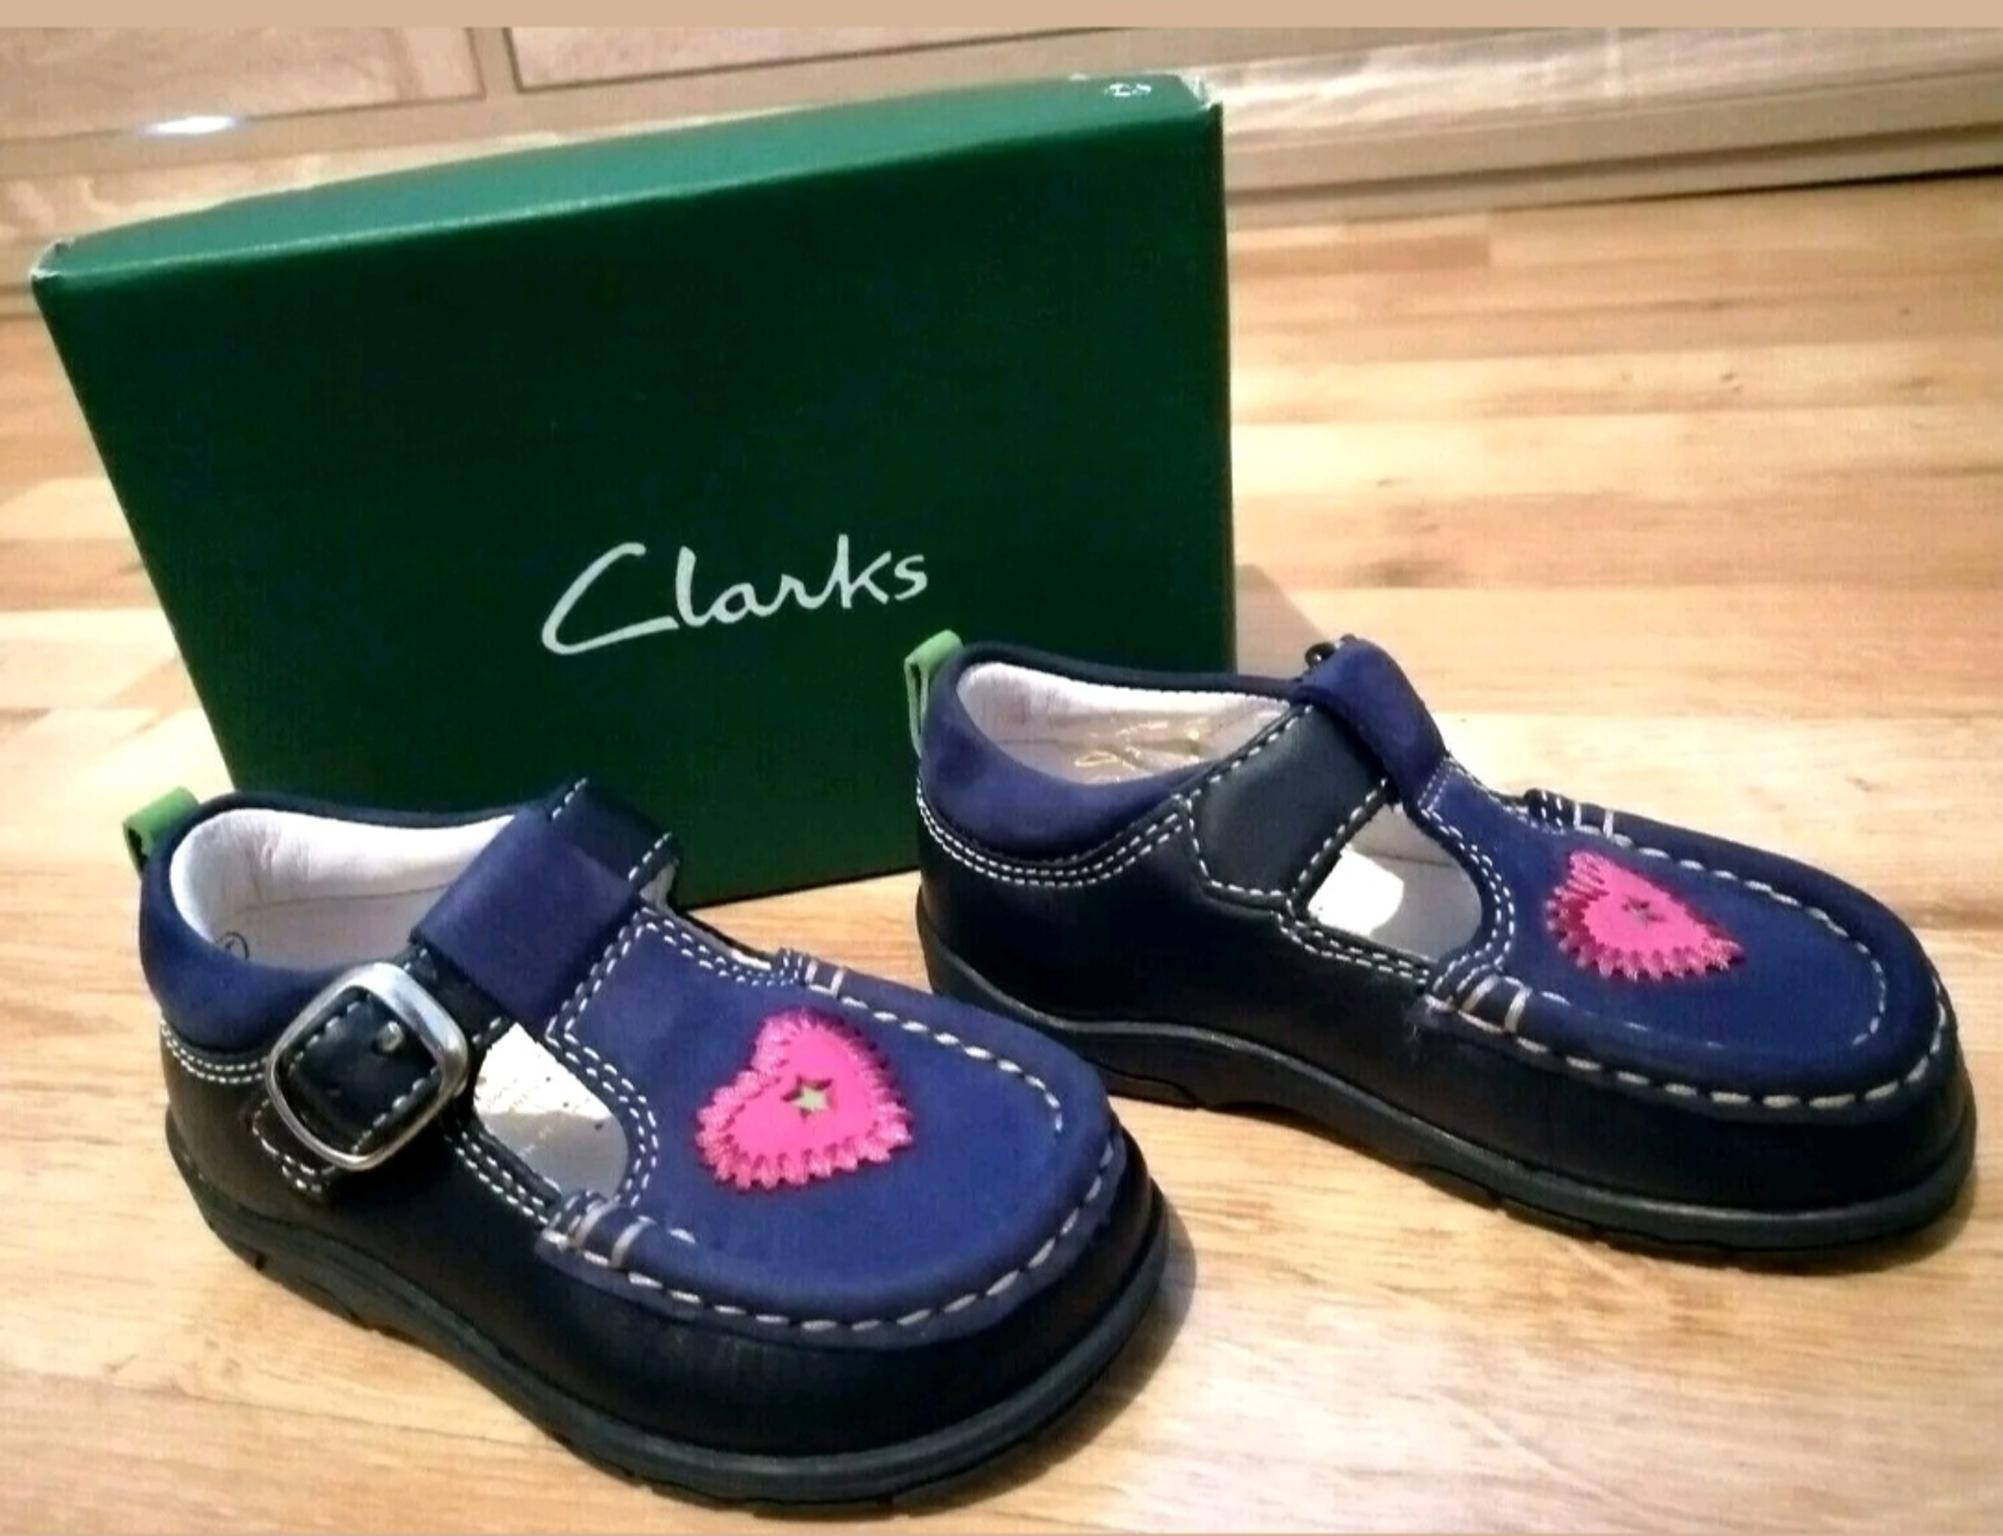 Clarks infant size 4.5 shoes girls Navy in ST7-Lyme for £ ...